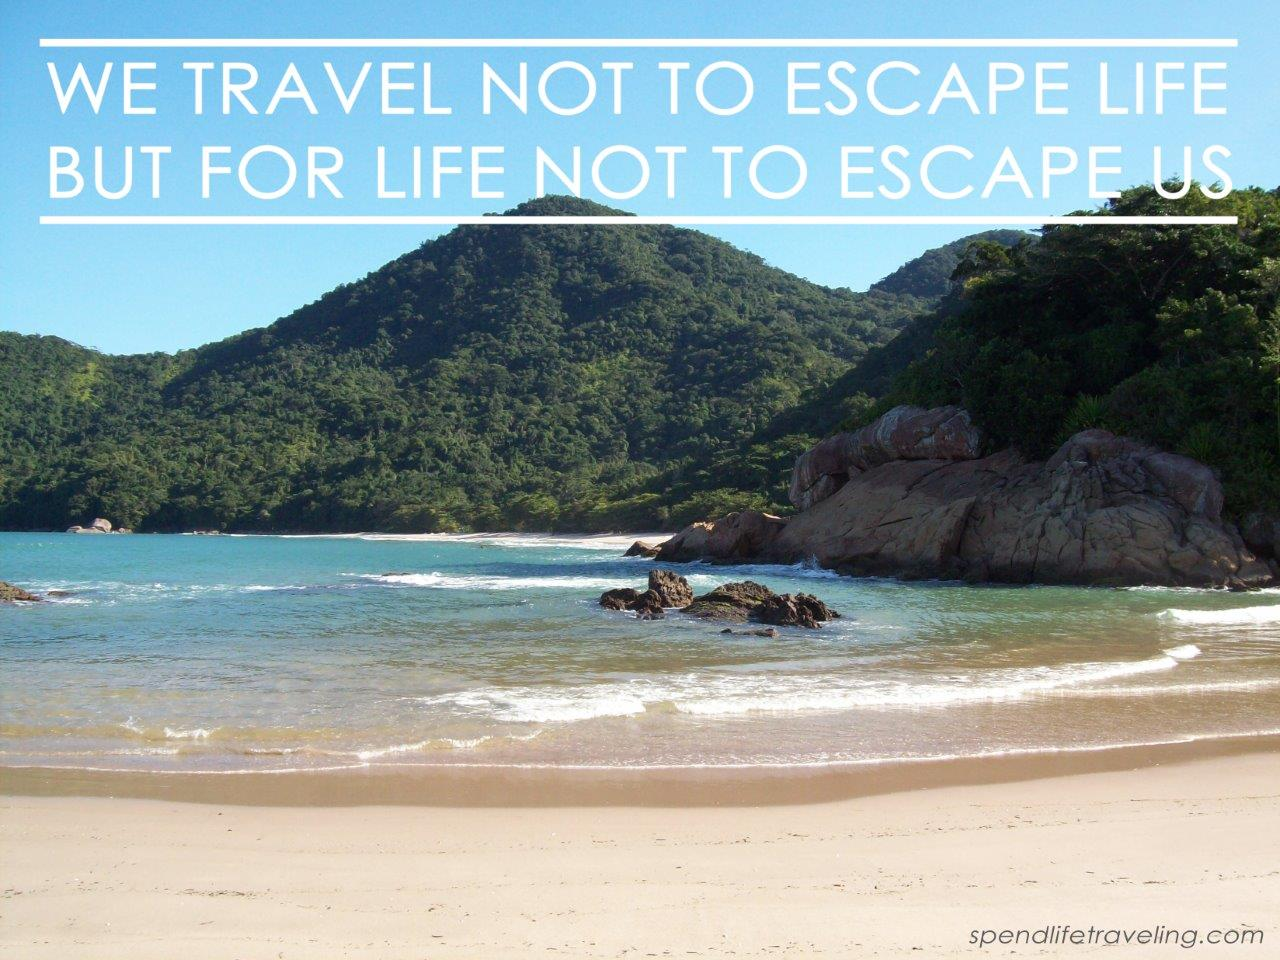 We travel not to escape life but for life not to escape us - Spend Life Traveling by Sanne Wesselman